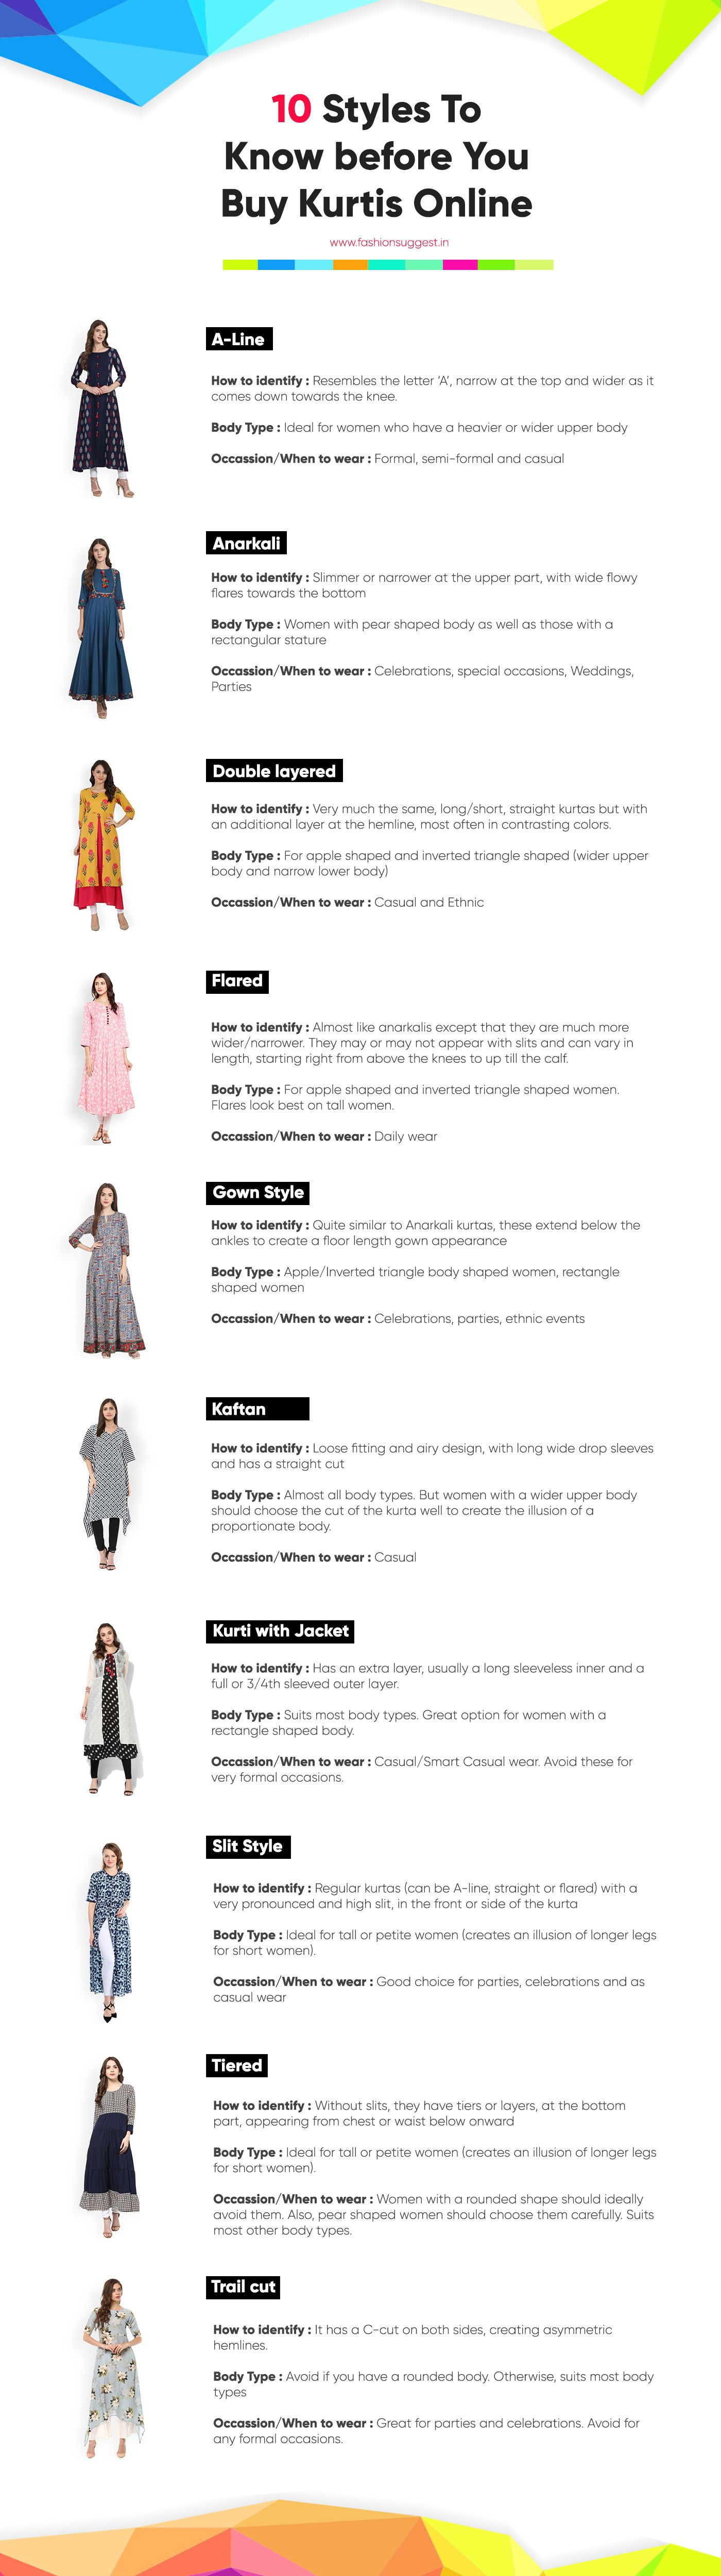 womens kurti guide, what are the different styles and types of kurtis for women